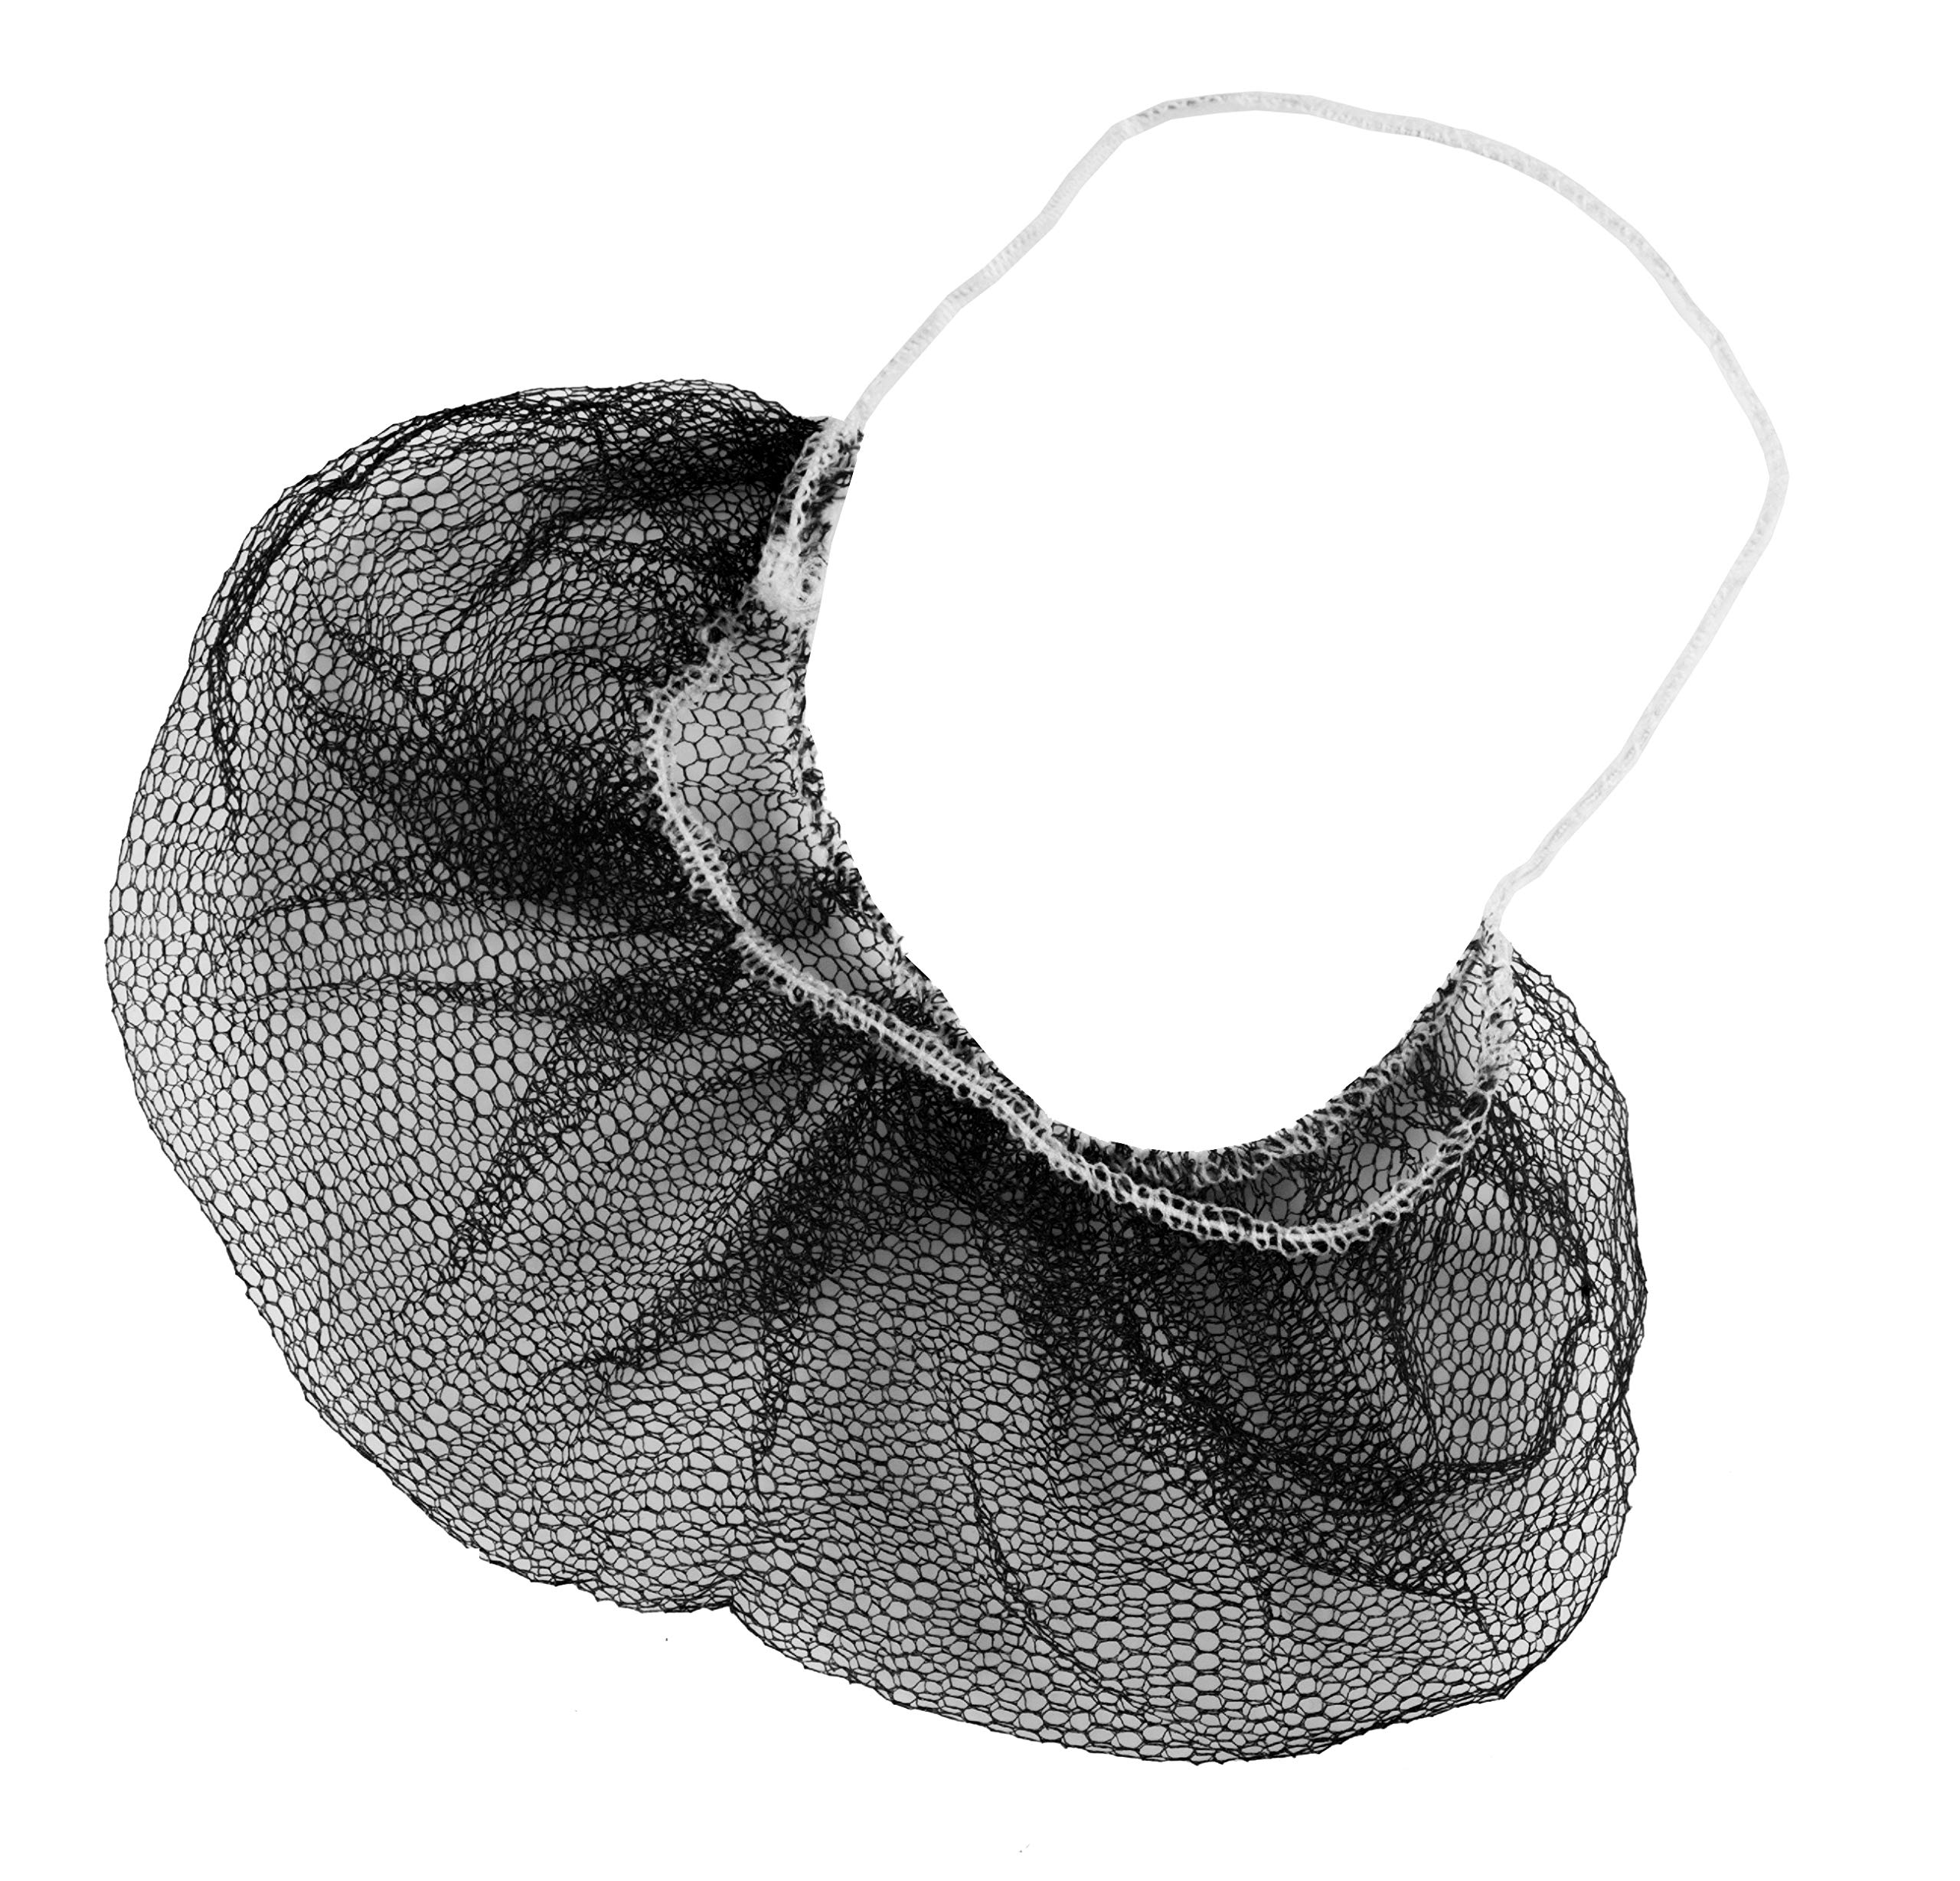 ABC 100 Pack of Disposable Soft Nylon Beard Covers 18''. Brown beard guards. Premium Quality beard net protectors. Honeycomb beard nets. Facial hair covering. Breathable & Lightweight. Wholesale.